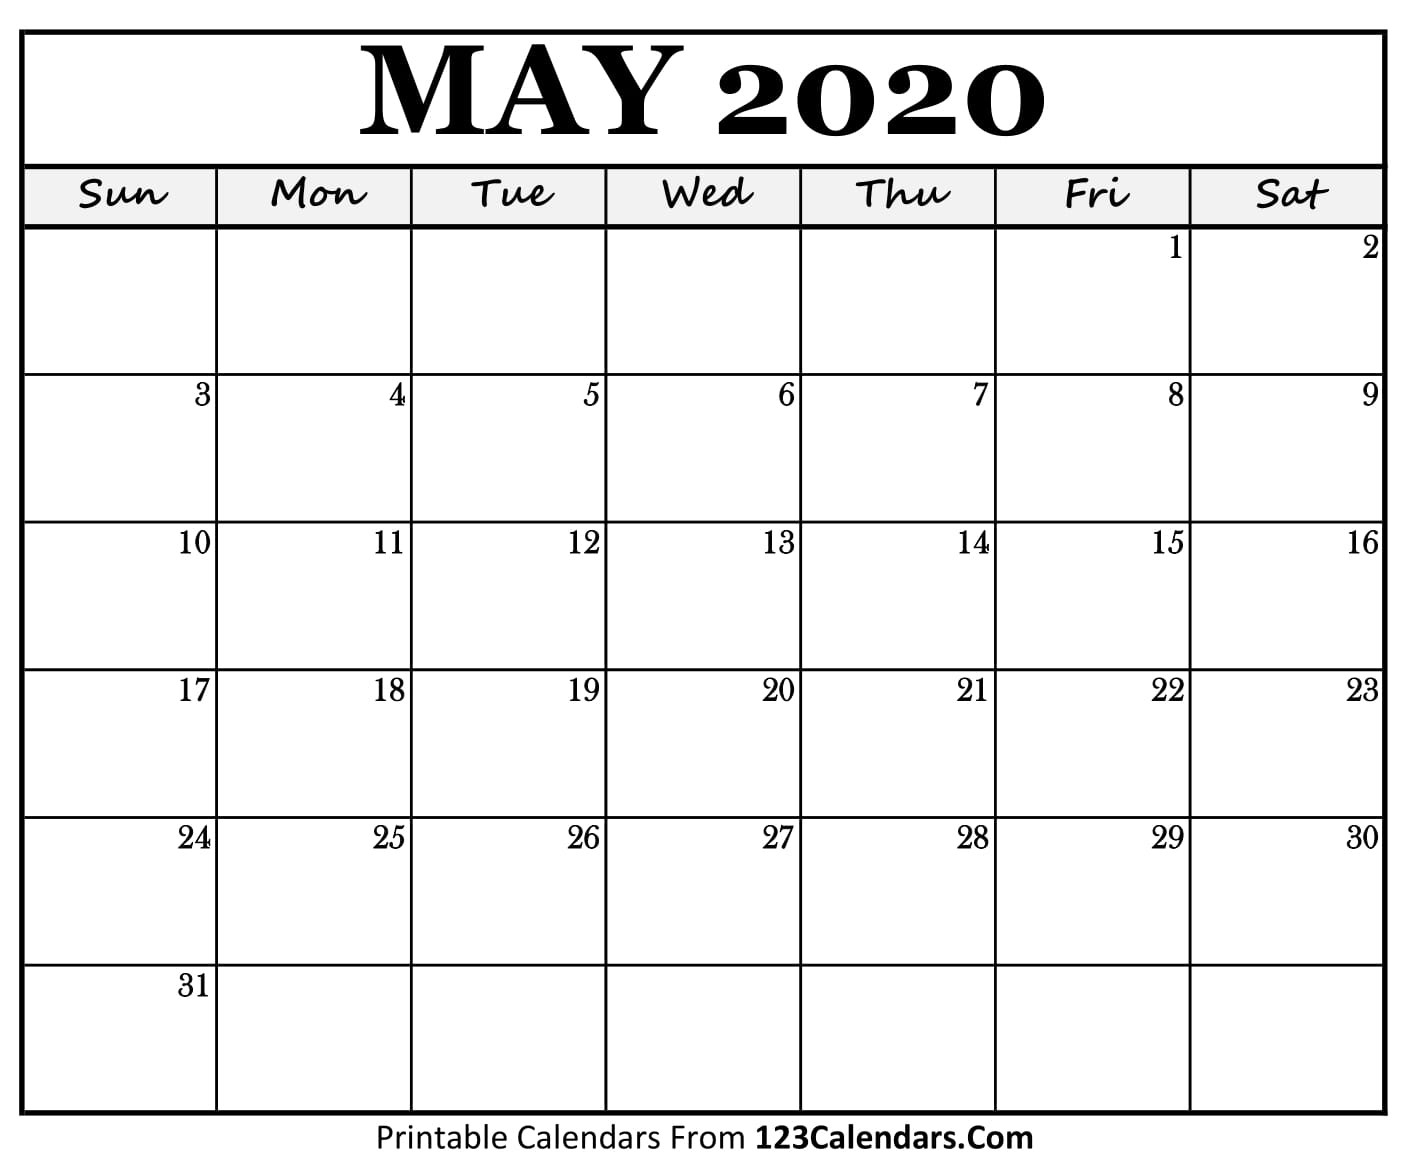 May 2020 Printable Calendar | 123Calendars-Summer Calendar Blank 2020